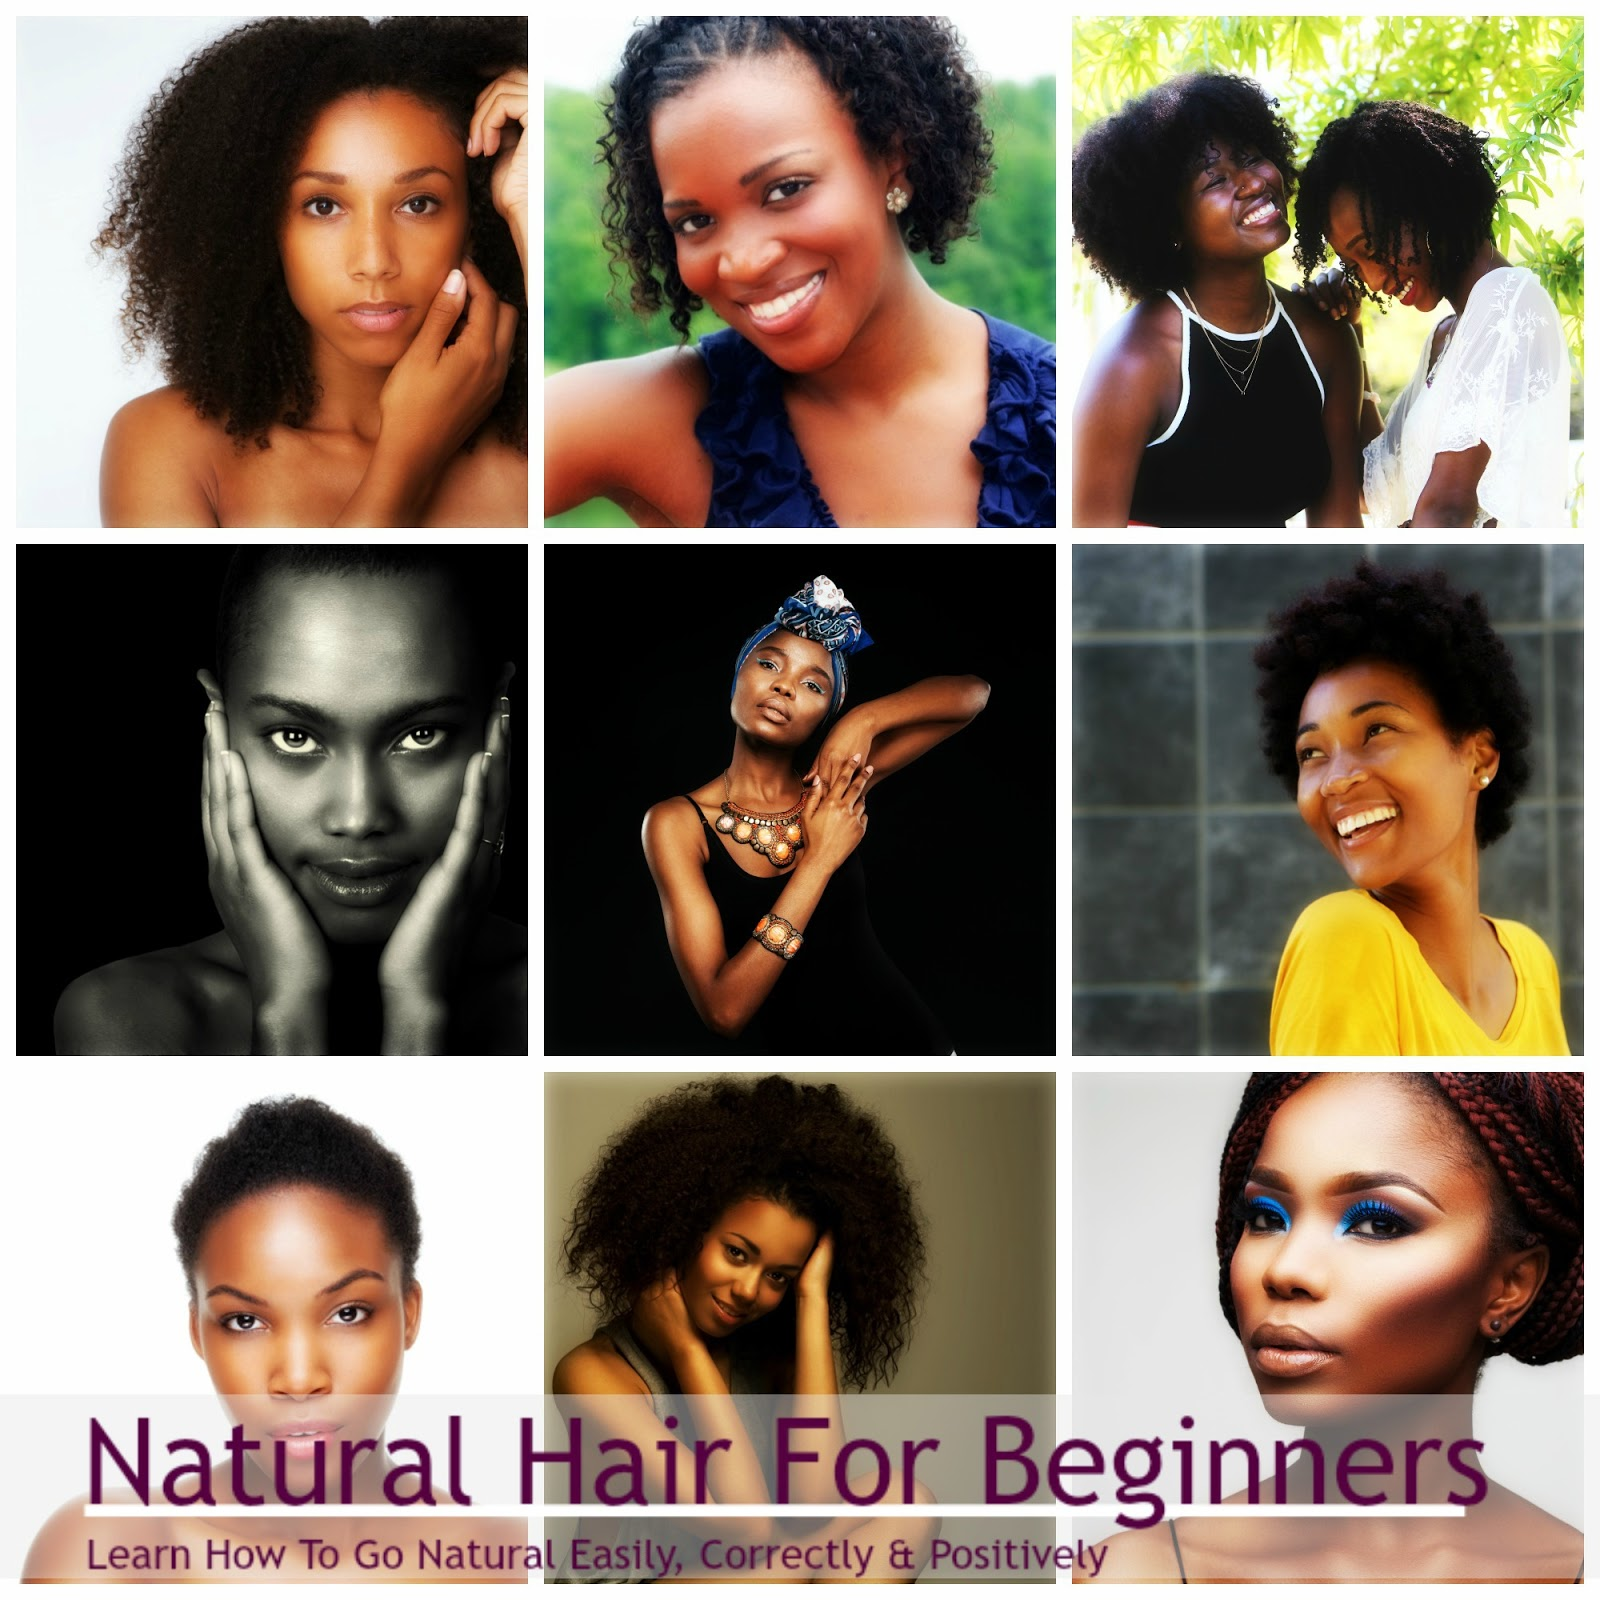 Natural Hair For Beginners: Start Here